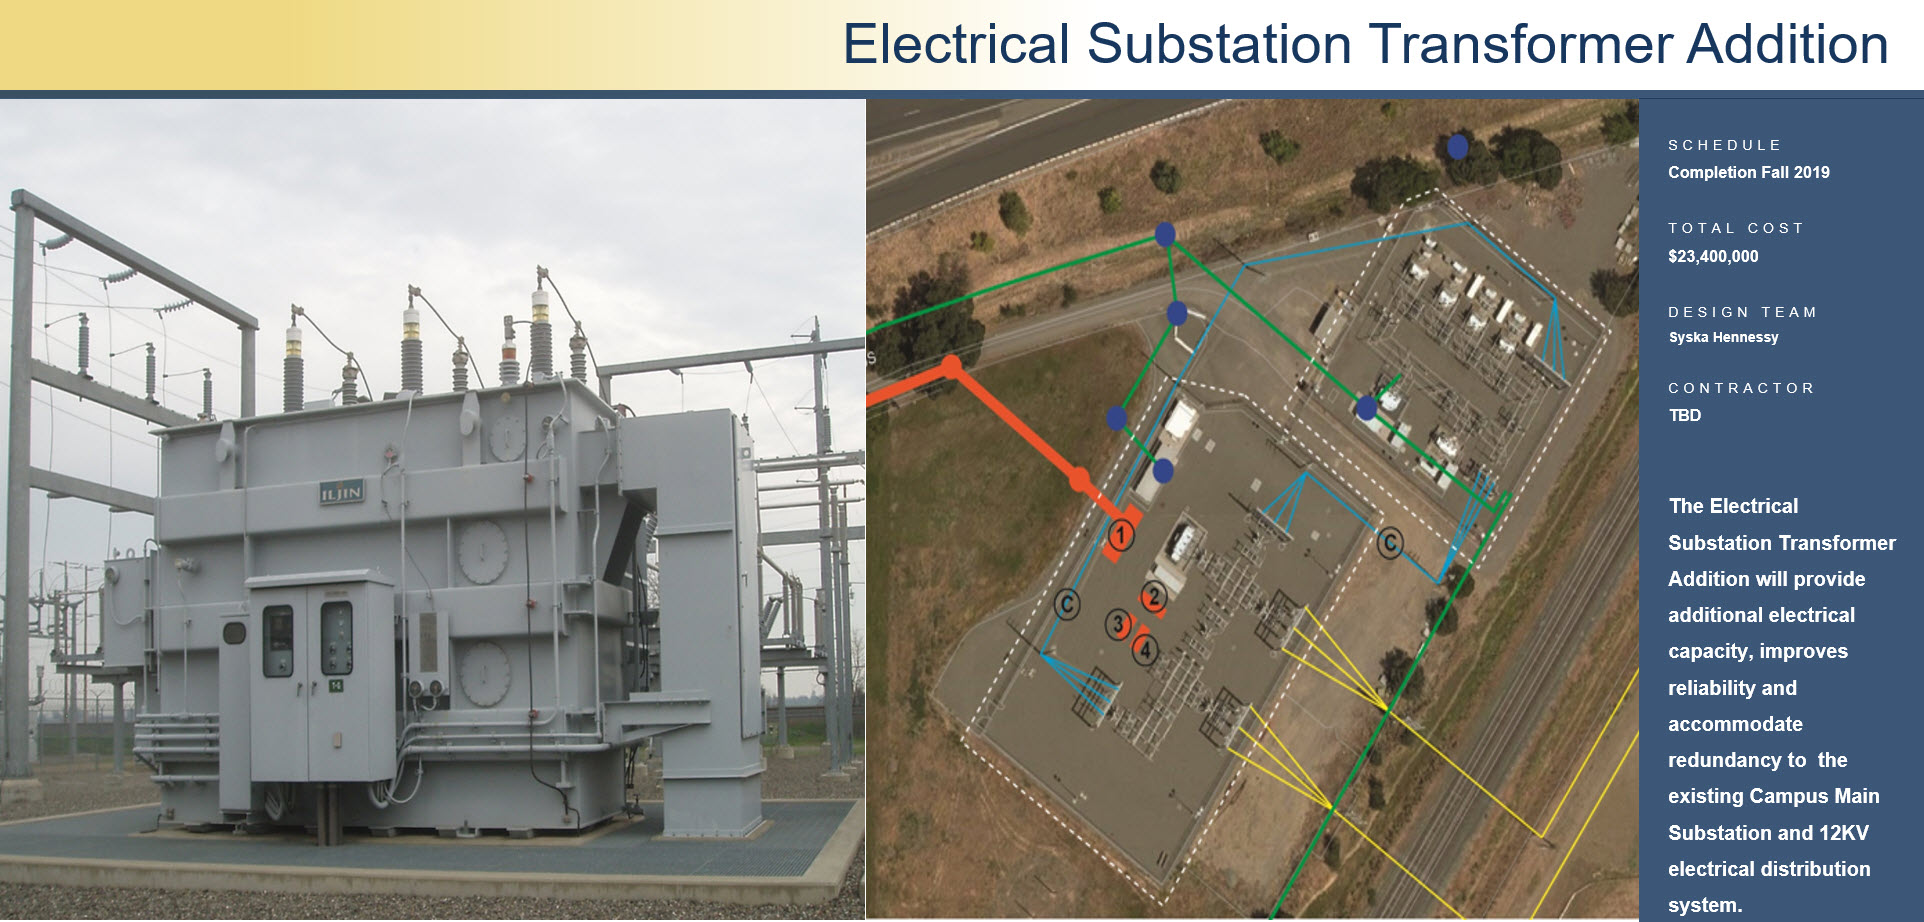 Electrical Substation Transformer Addition